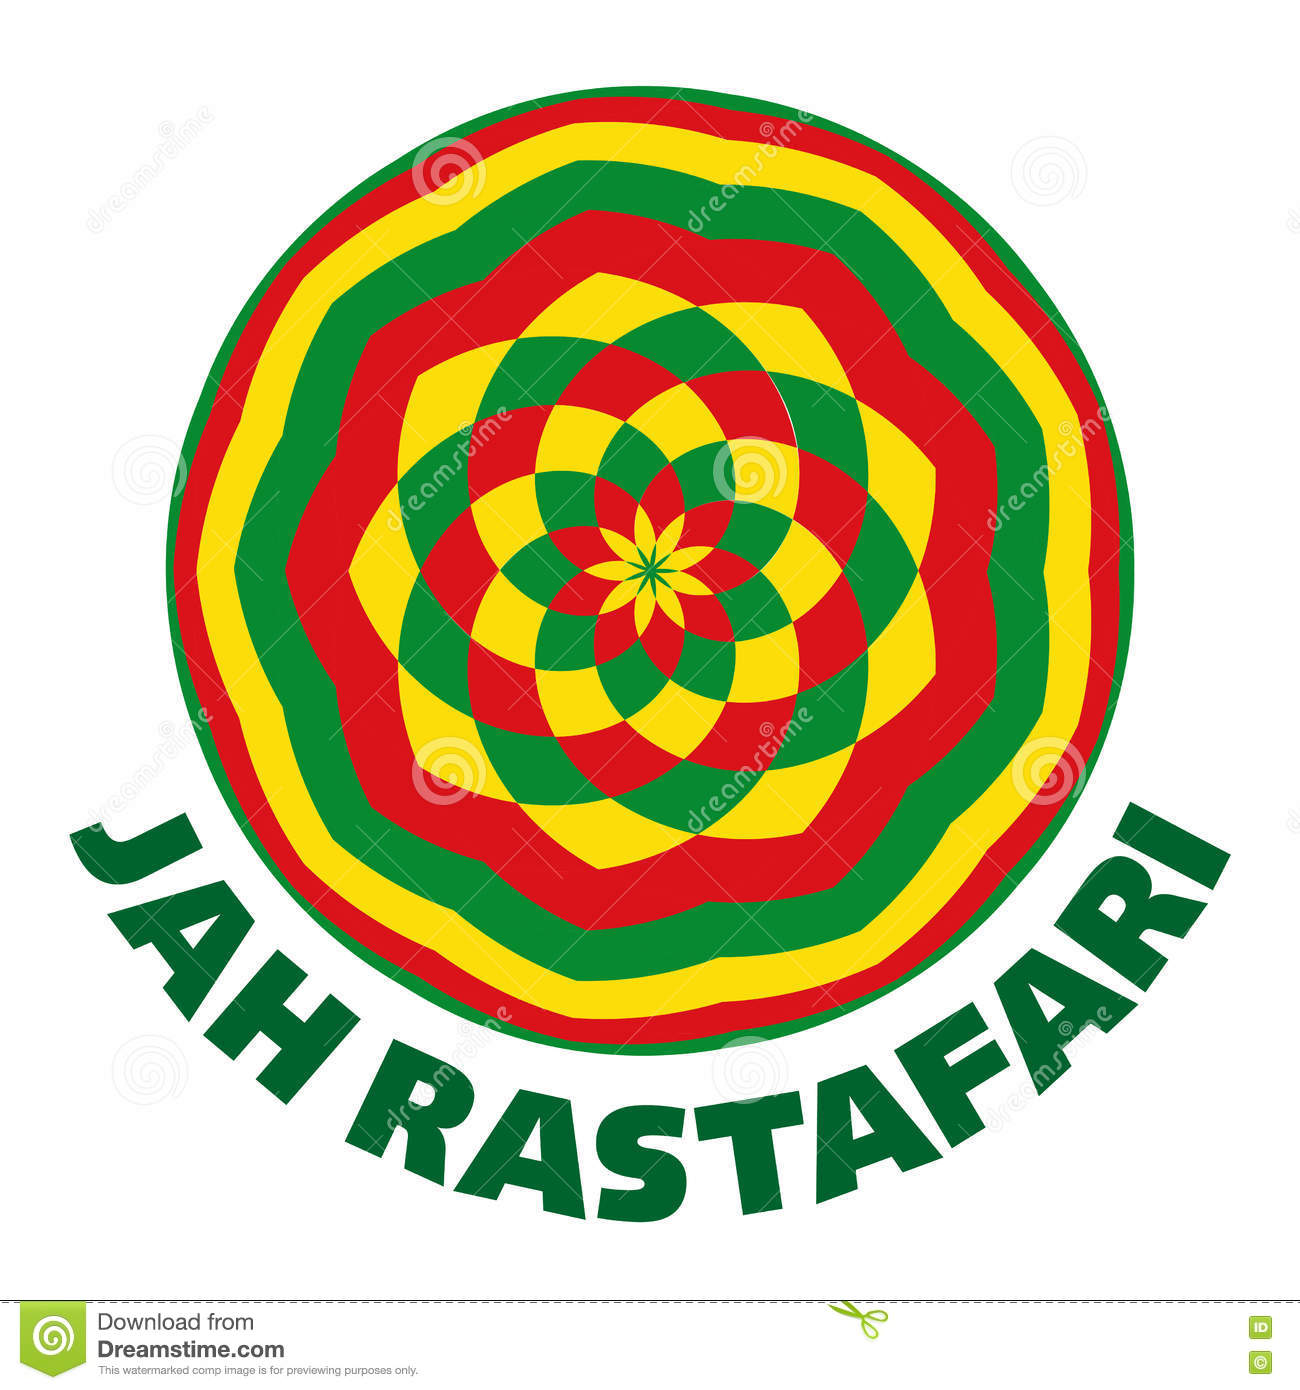 rasta logo stock illustrations 355 rasta logo stock illustrations vectors clipart dreamstime dreamstime com